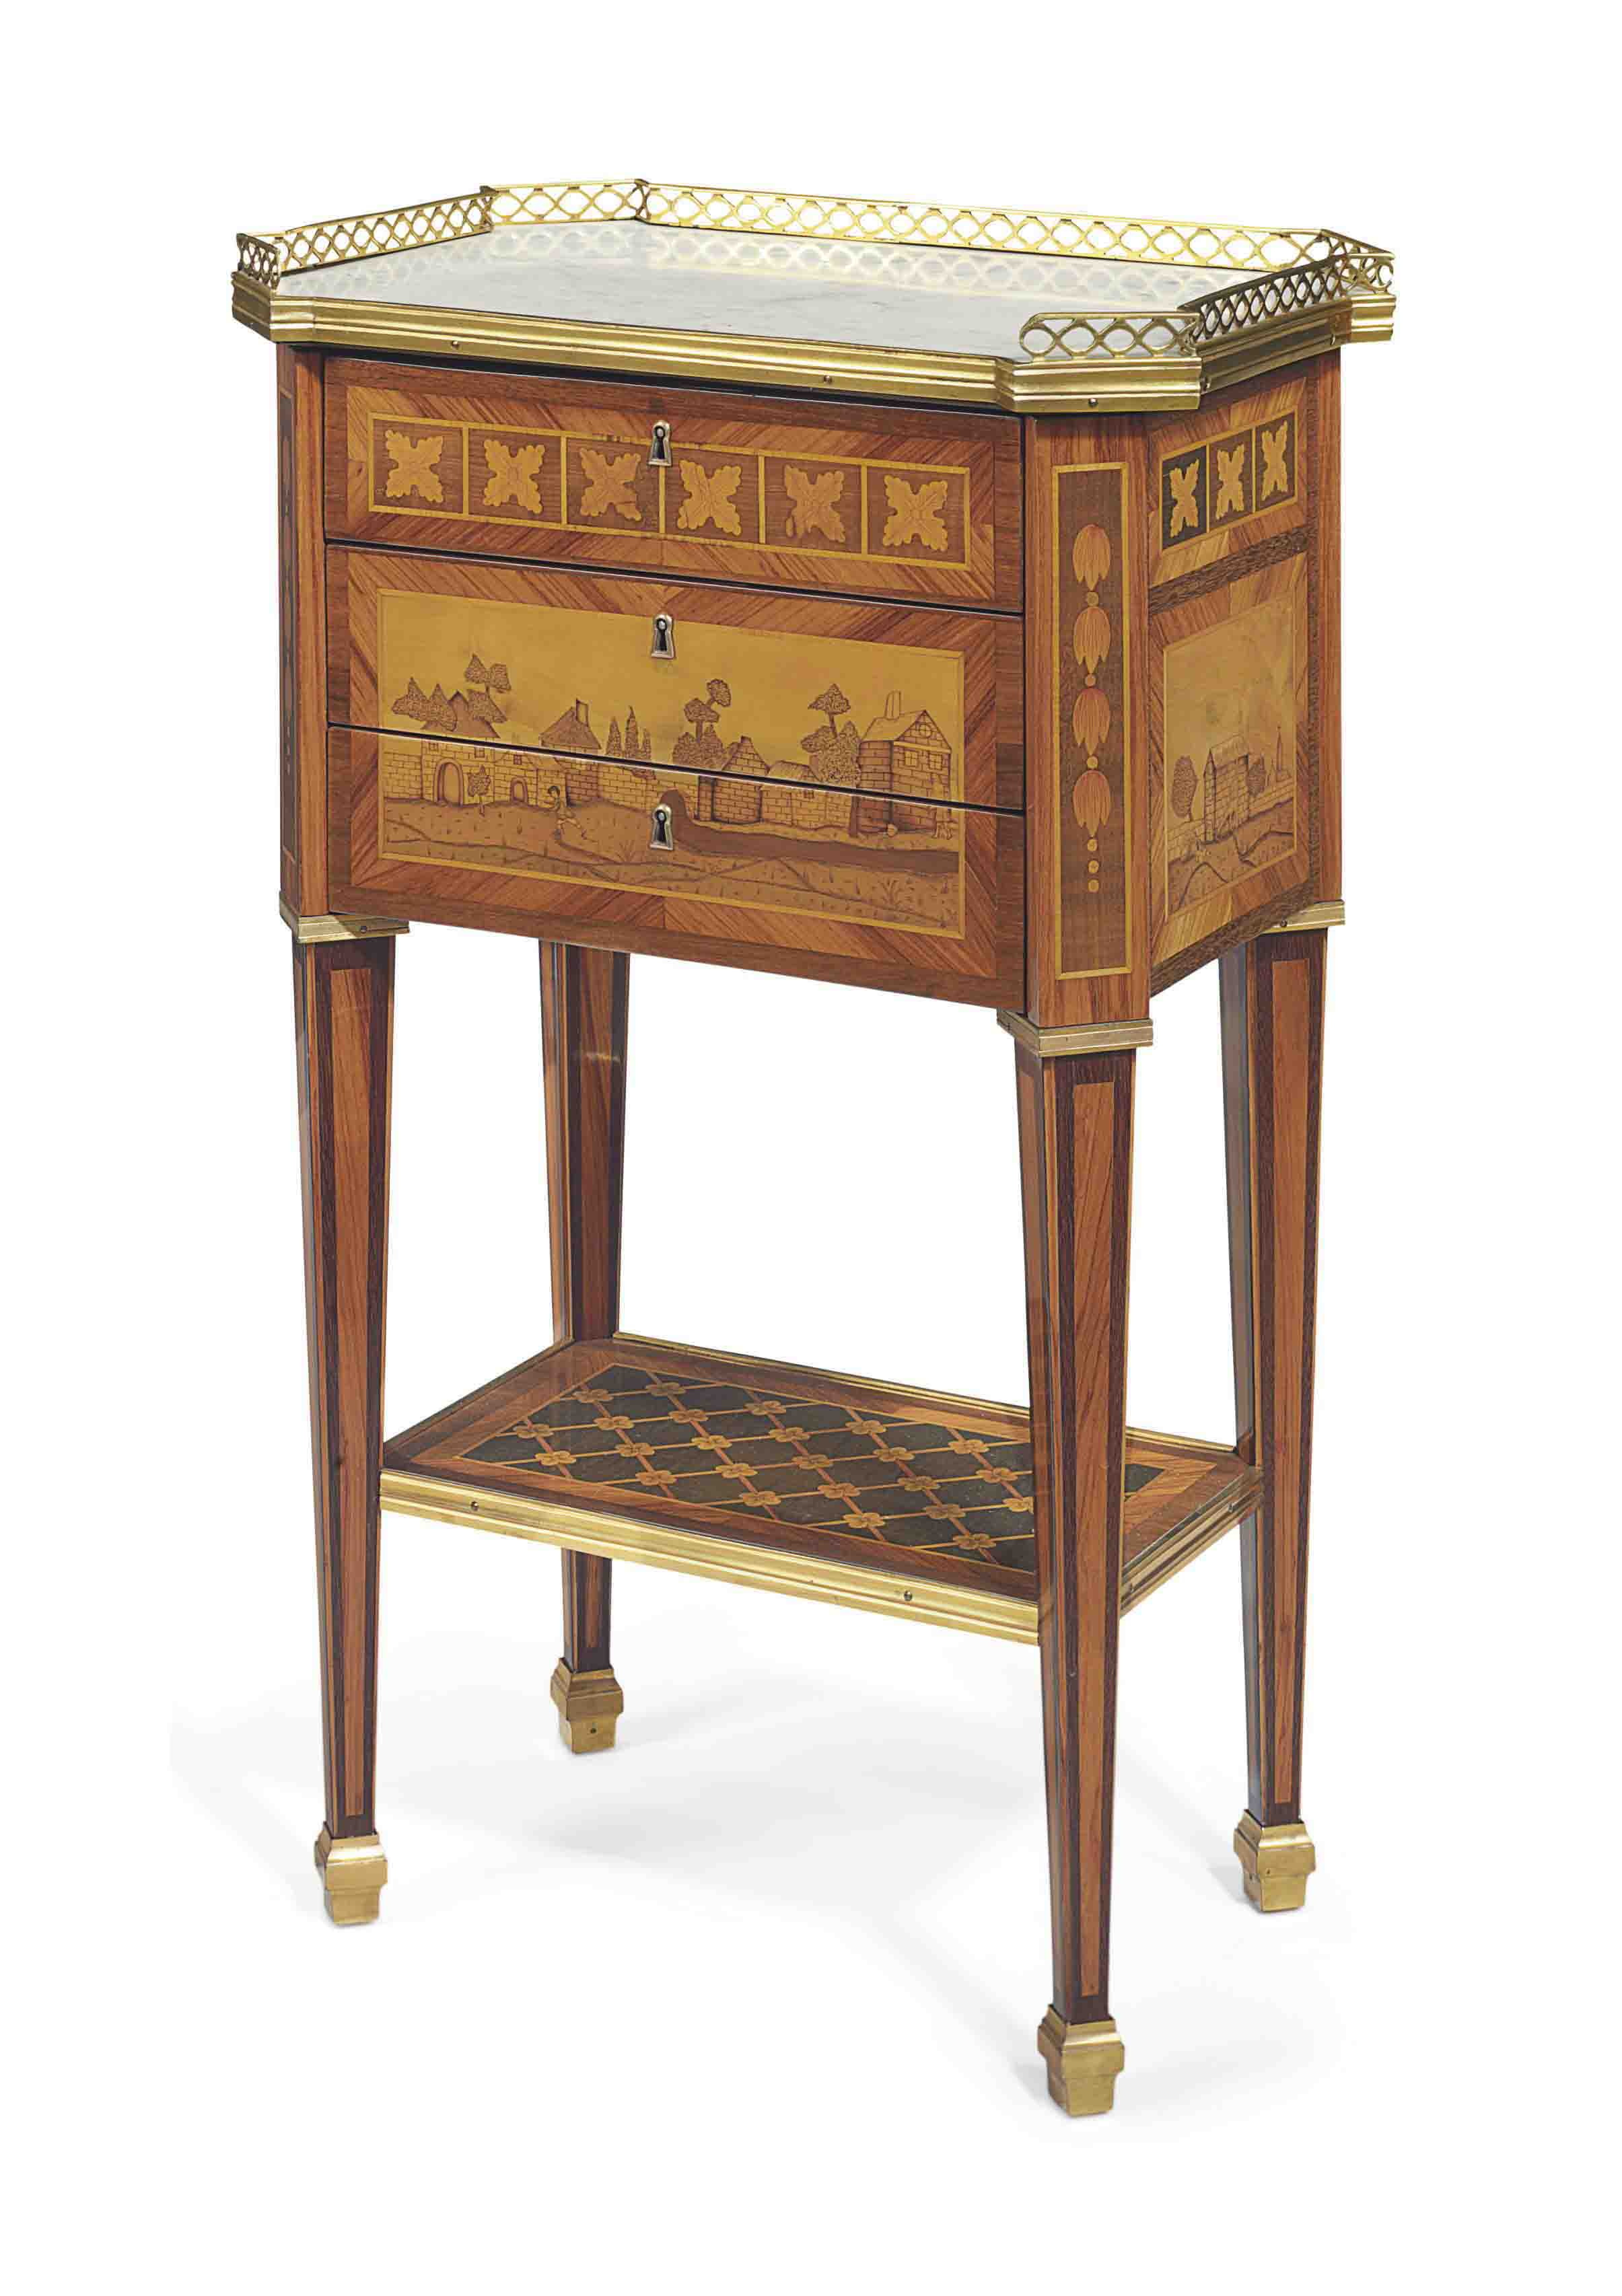 A LOUIS XVI AMARANTH, TULIPWOOD AND MARQUETRY WRITING TABLE